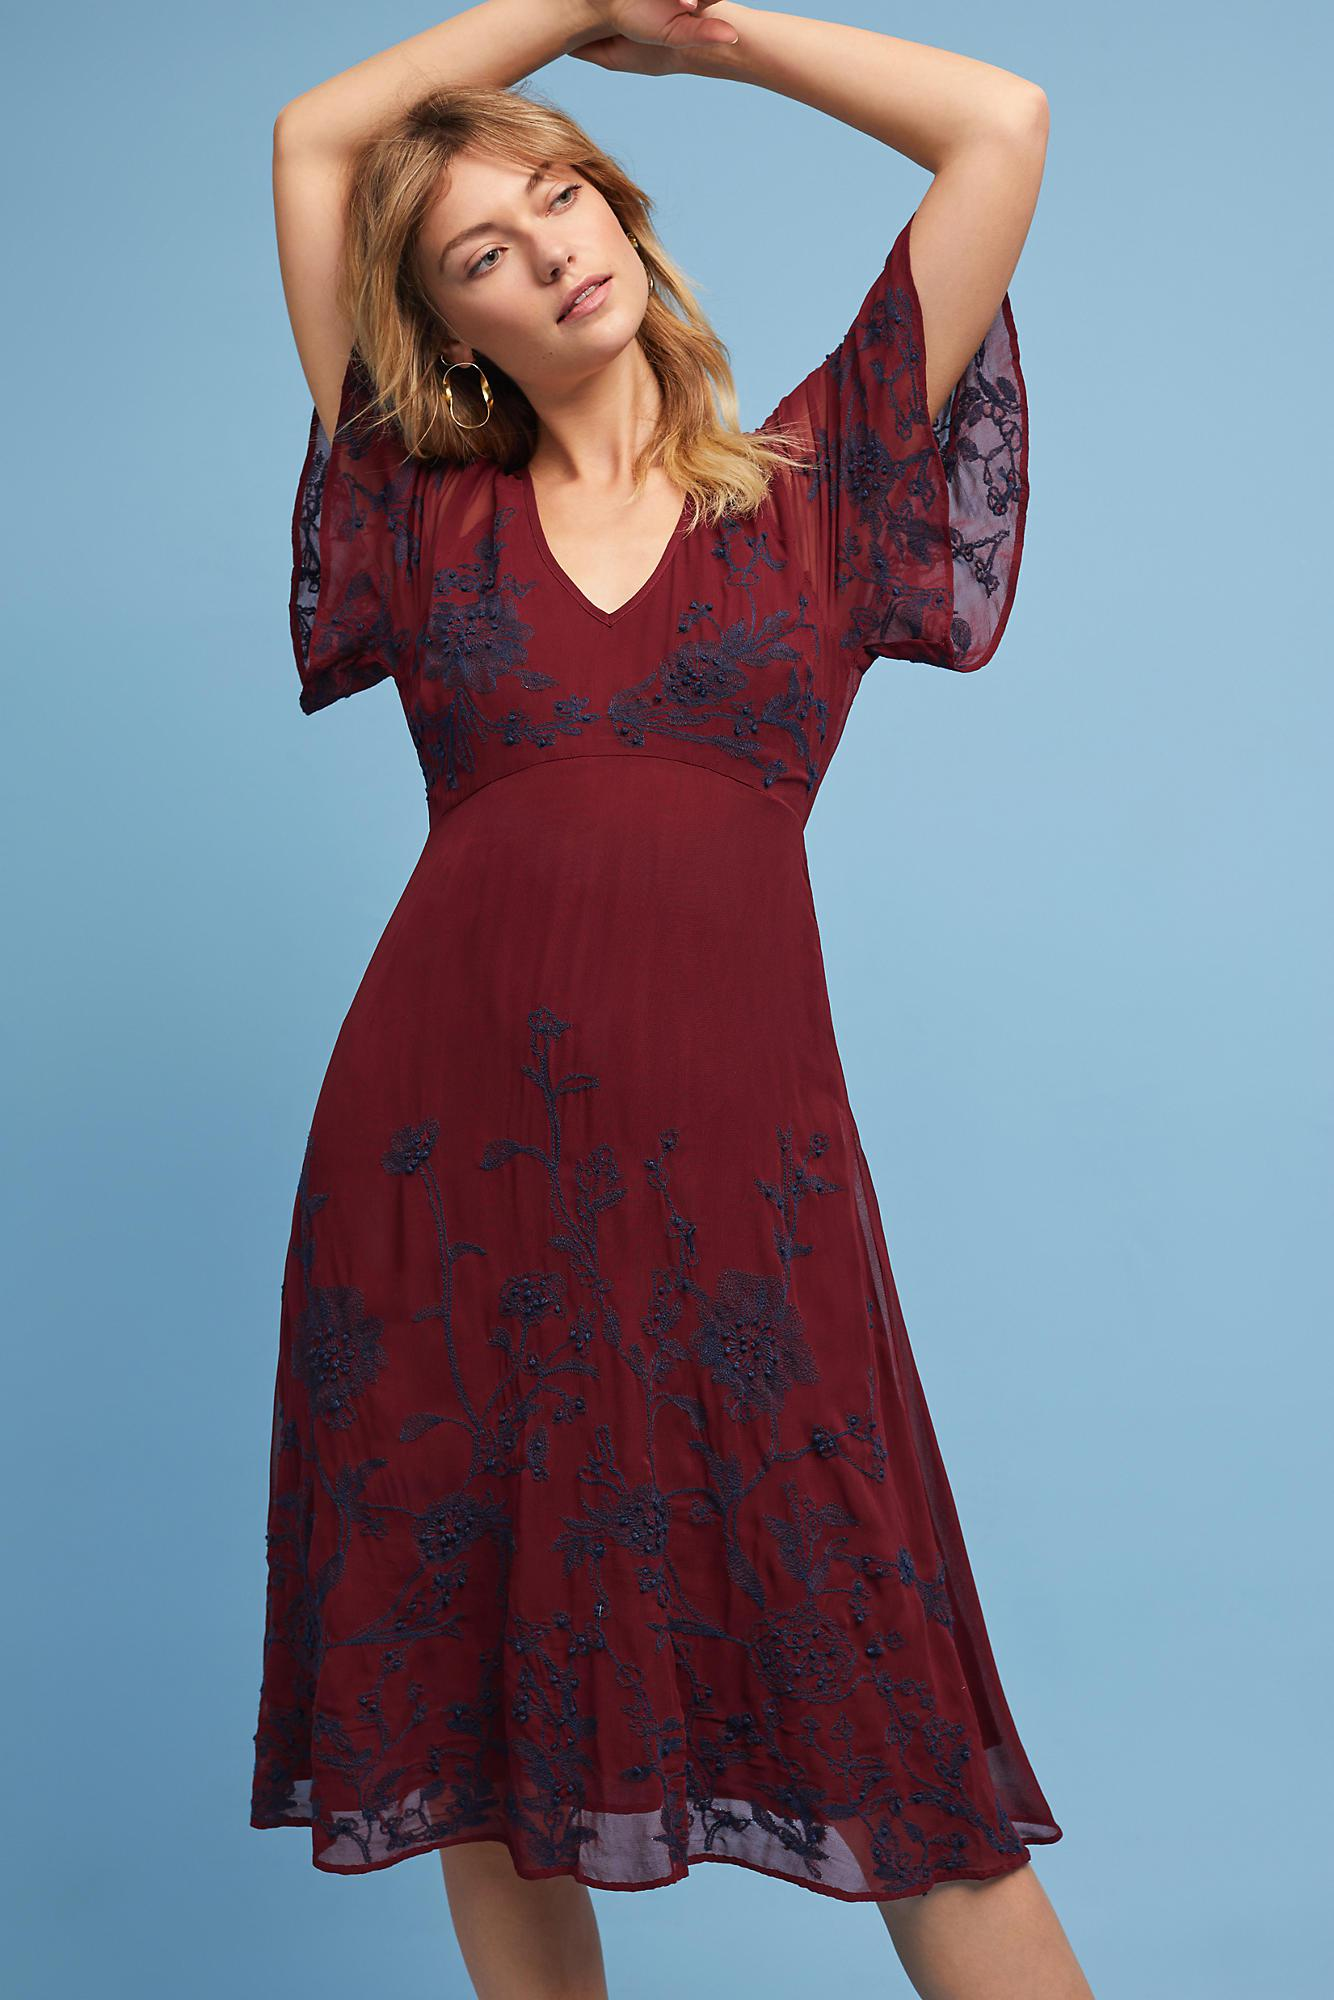 a3feed2205d3 Maeve Francoise Embroidered Dress in Red - Lyst